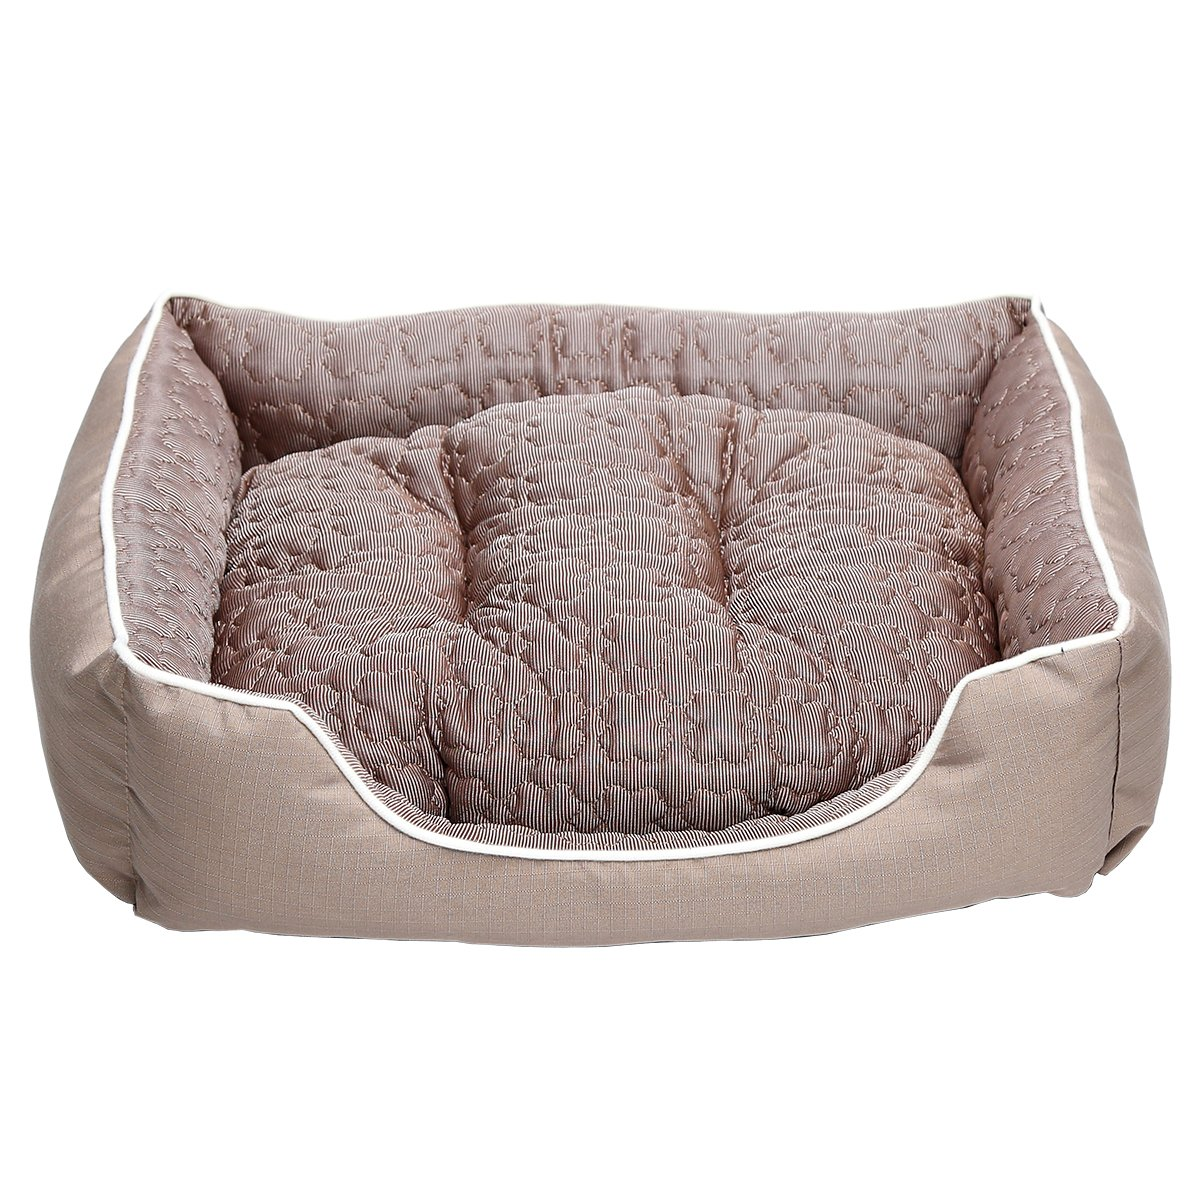 18352a8aef52 JEMA Rectangle Dog Bed - Lounger for Dogs & Cats with Self Warming Cozy  Reversible Removable Inner Plush Cushion, Non Slip Waterproof Bottom,  Square Medium ...